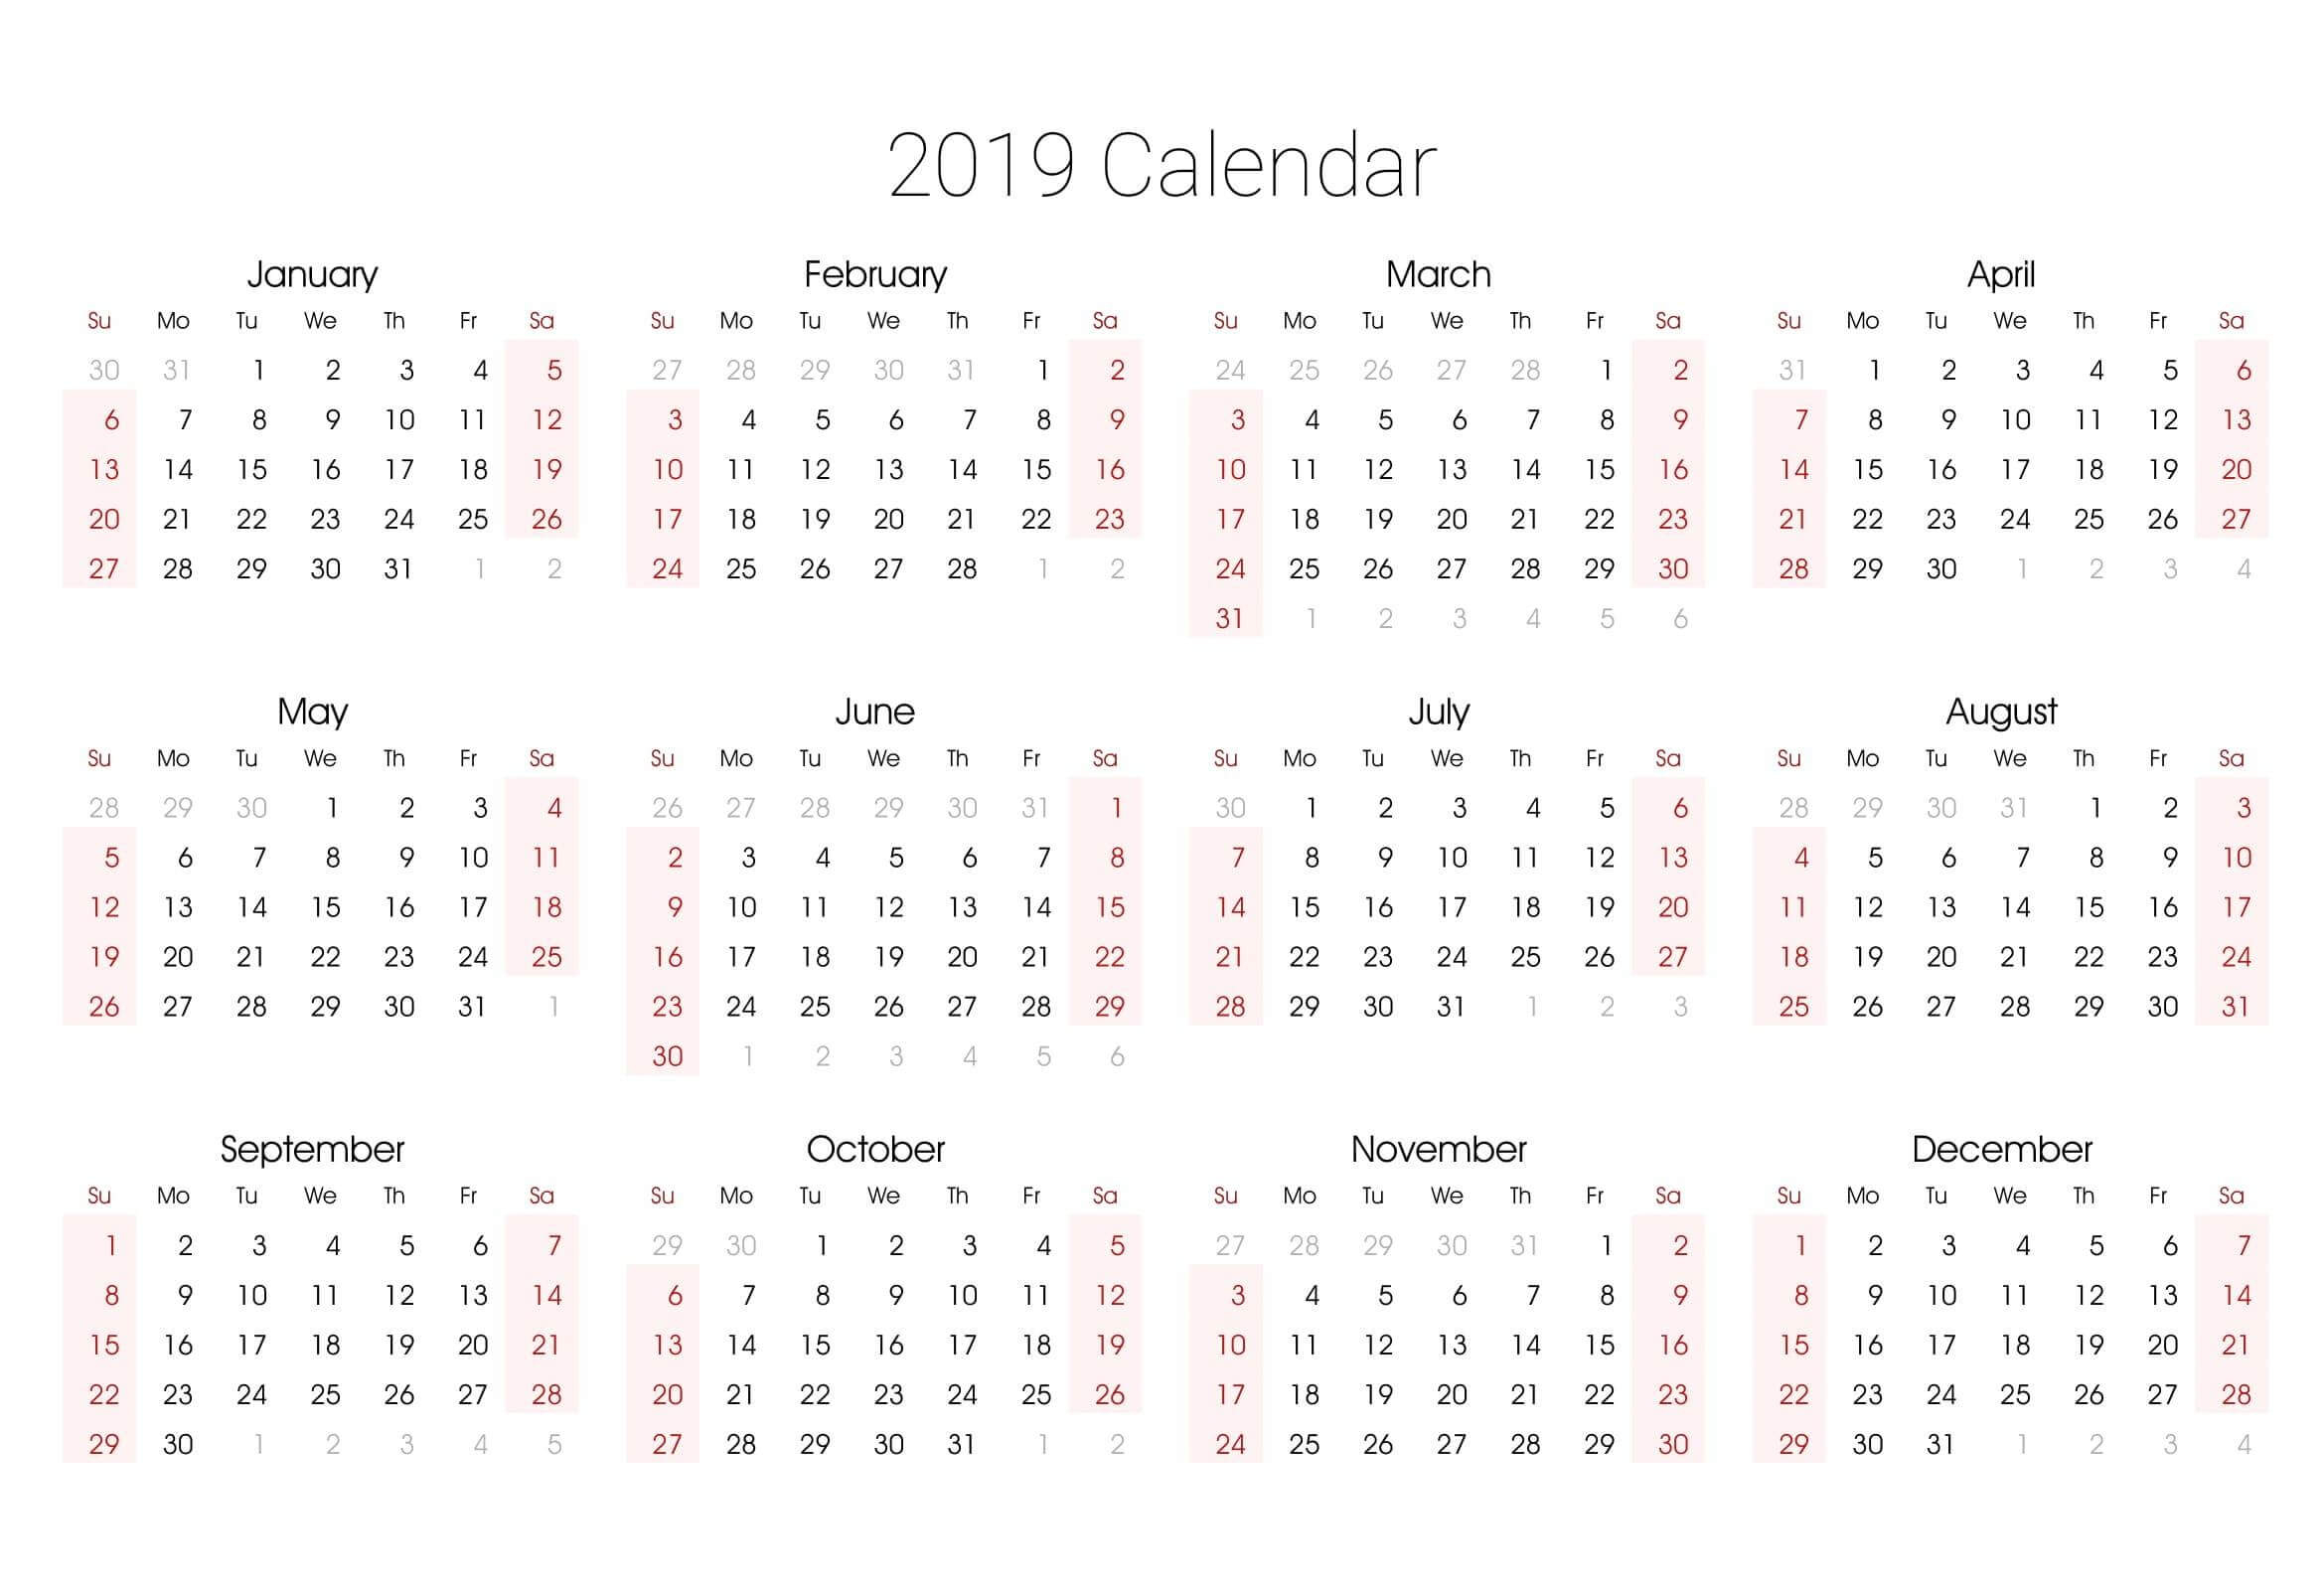 Yearly Calendar Template With Notes 2020 - 2019 Calendars intended for Calendar At A Glance With Usa Holidays For 2020